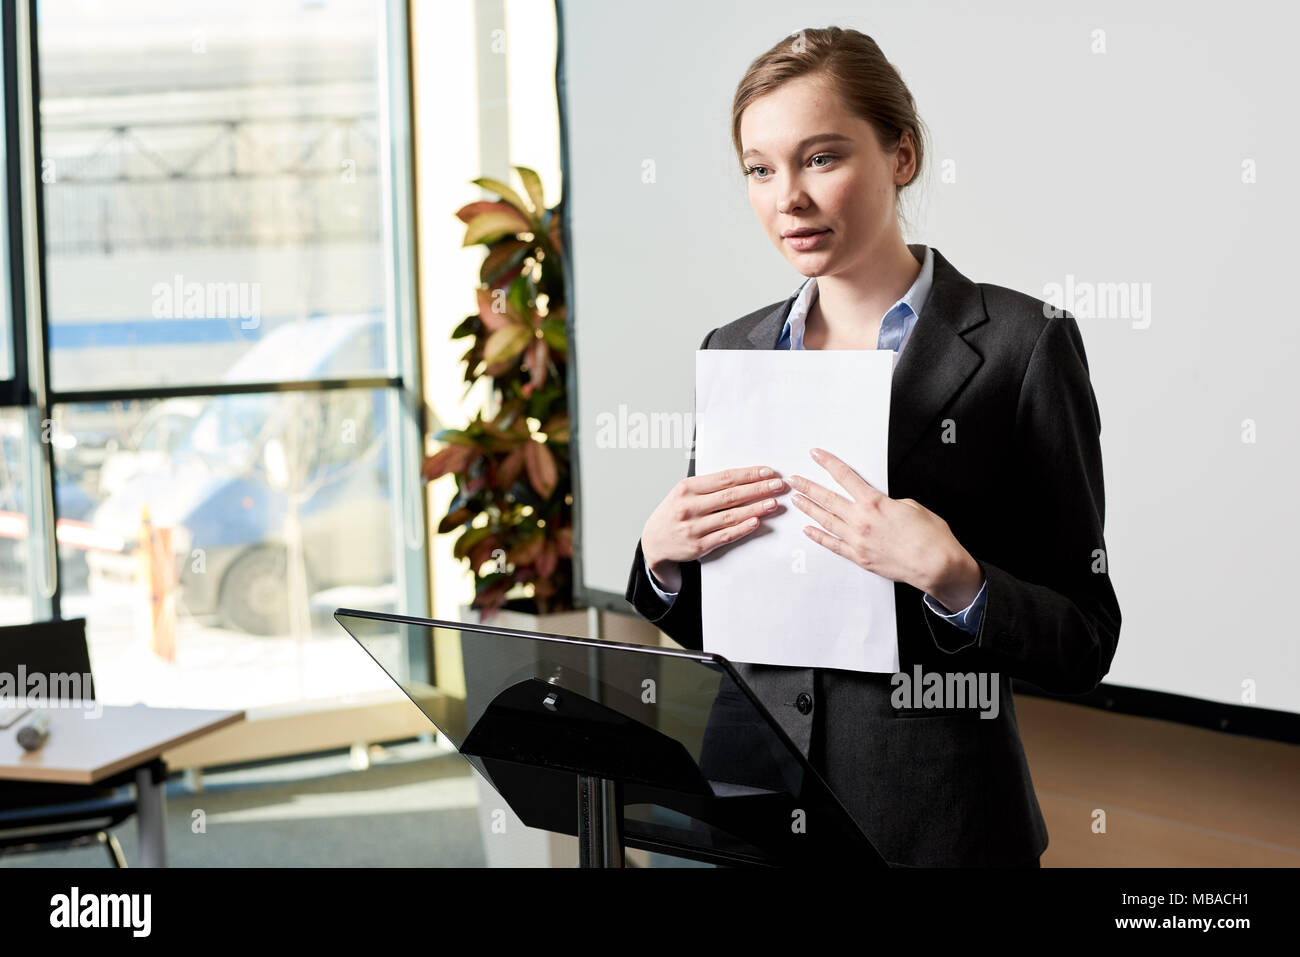 Young Businesswoman Giving Speech at Forum - Stock Image